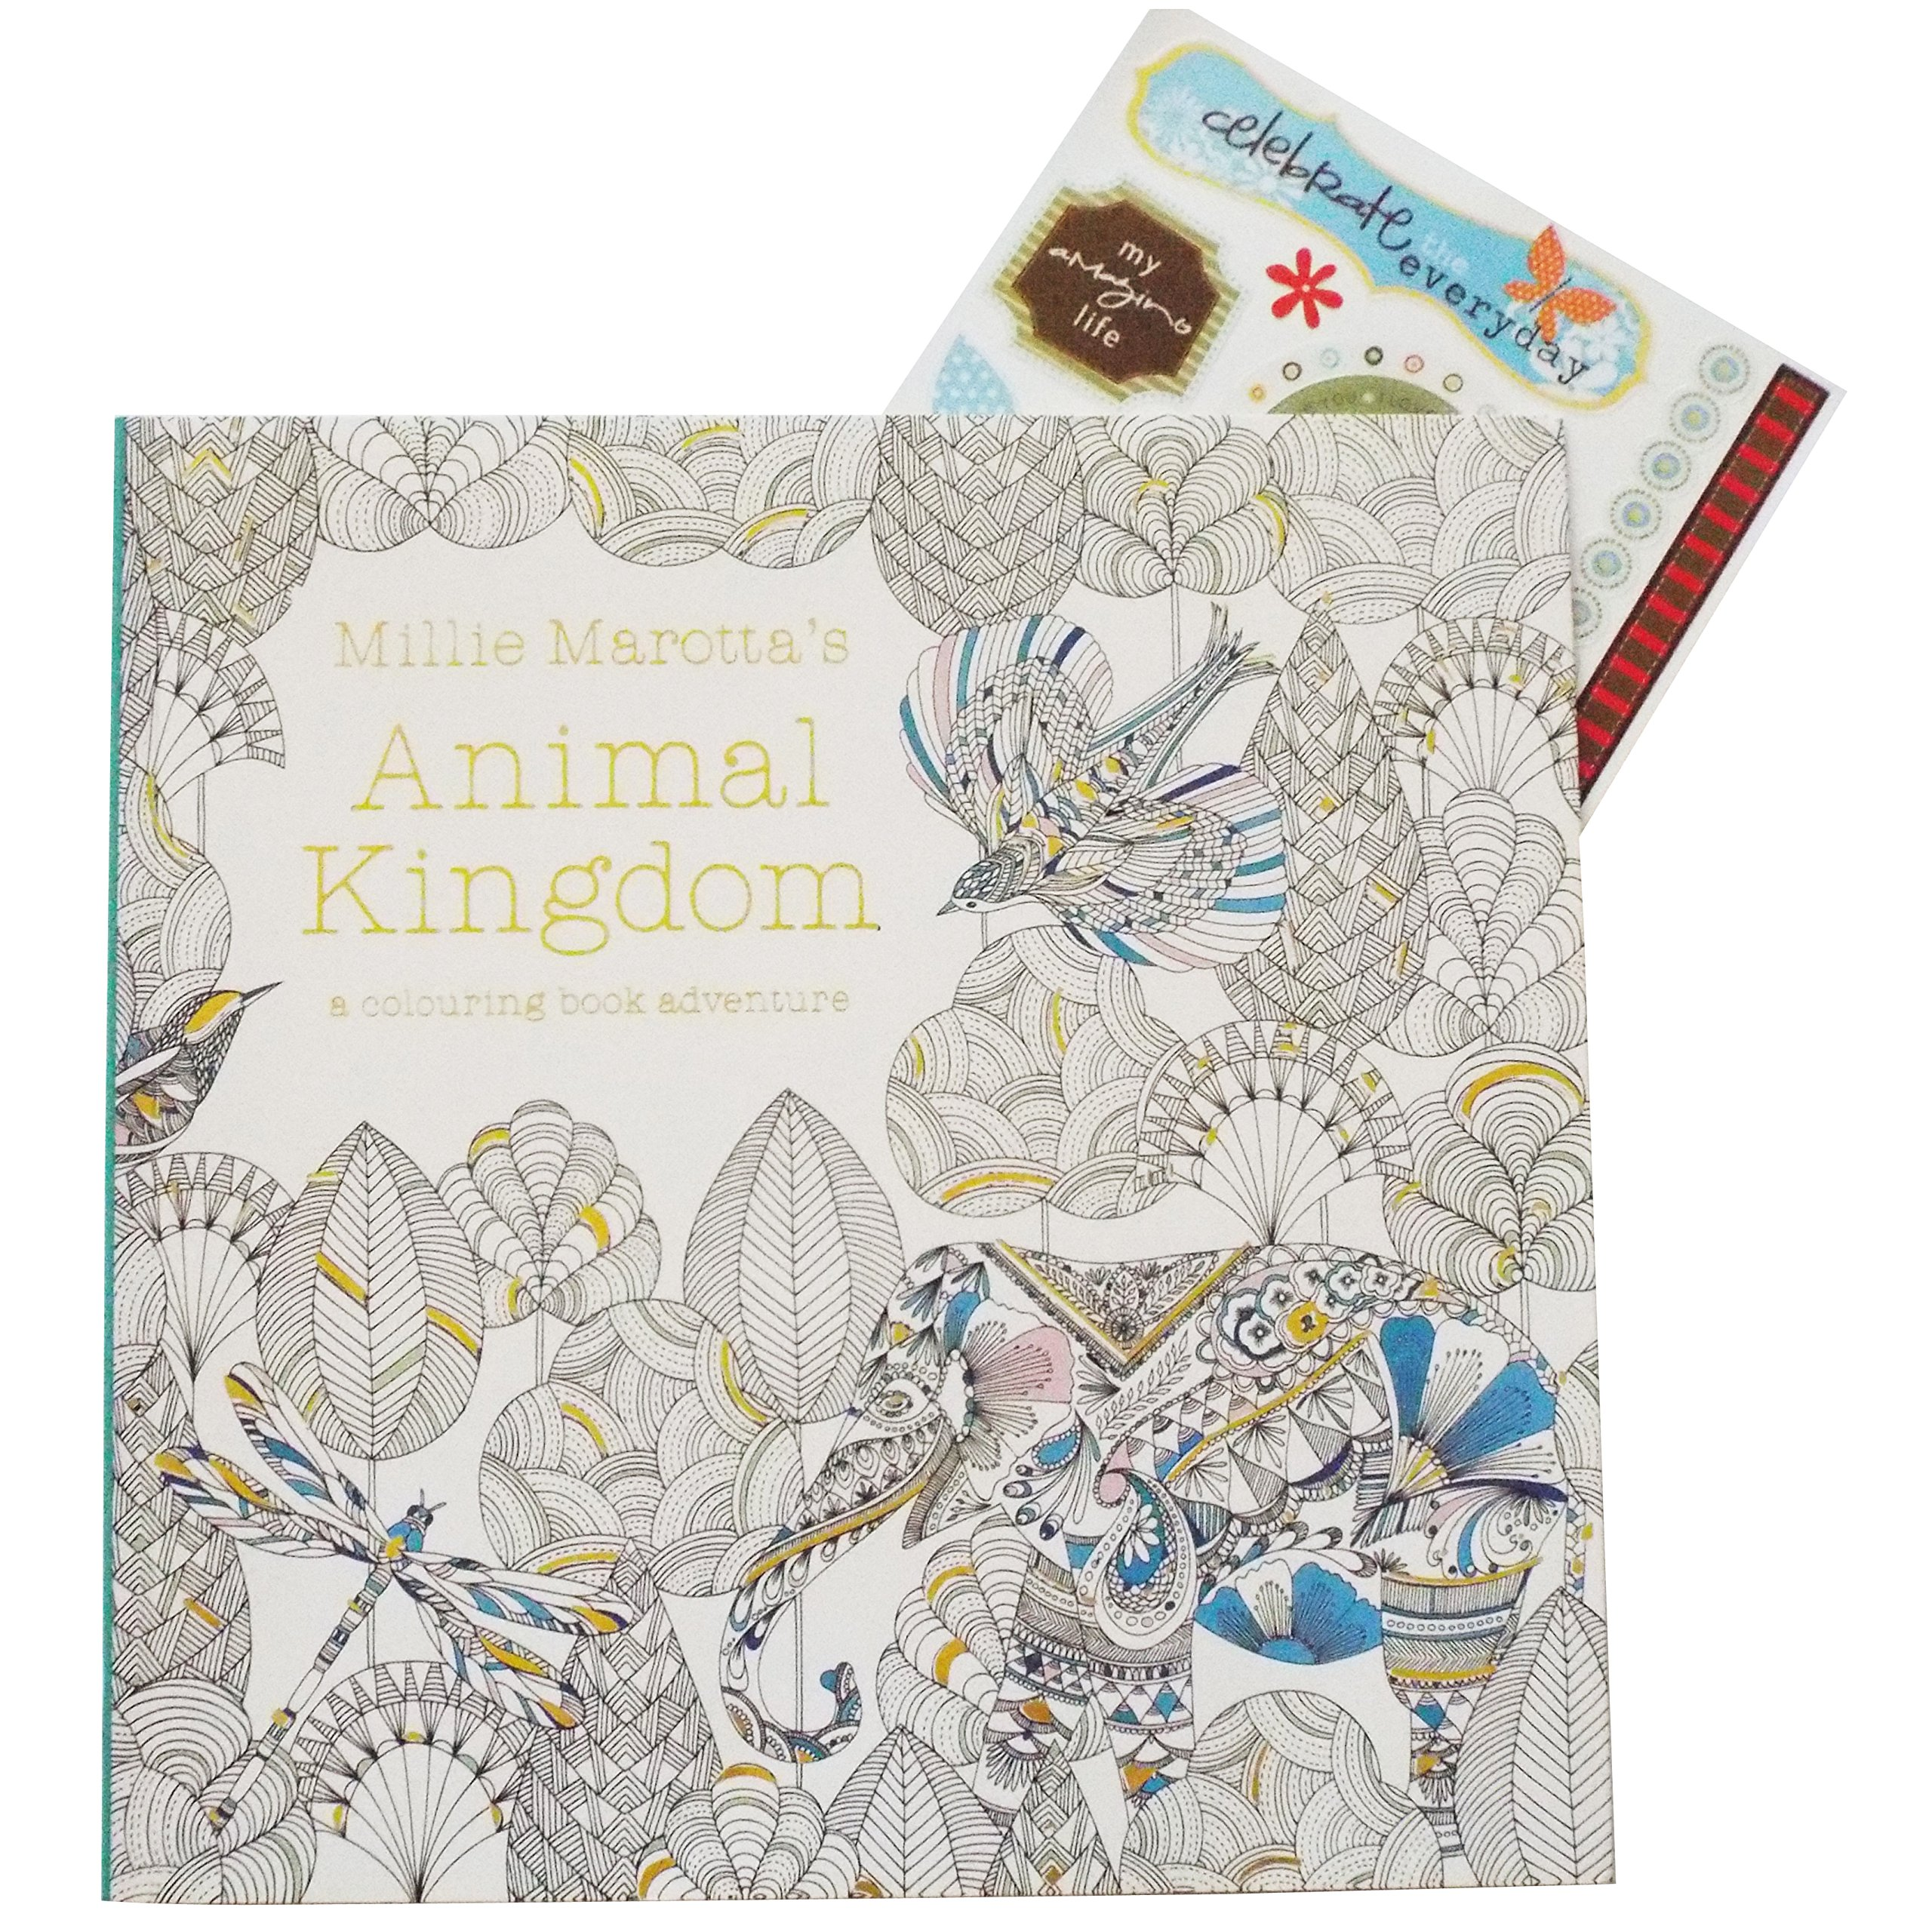 Adult Coloring Book Stress Relieving Patterns Animal Kingdom For Adults Relaxation Free Bonus Sheet Of Stickers Included Sticker